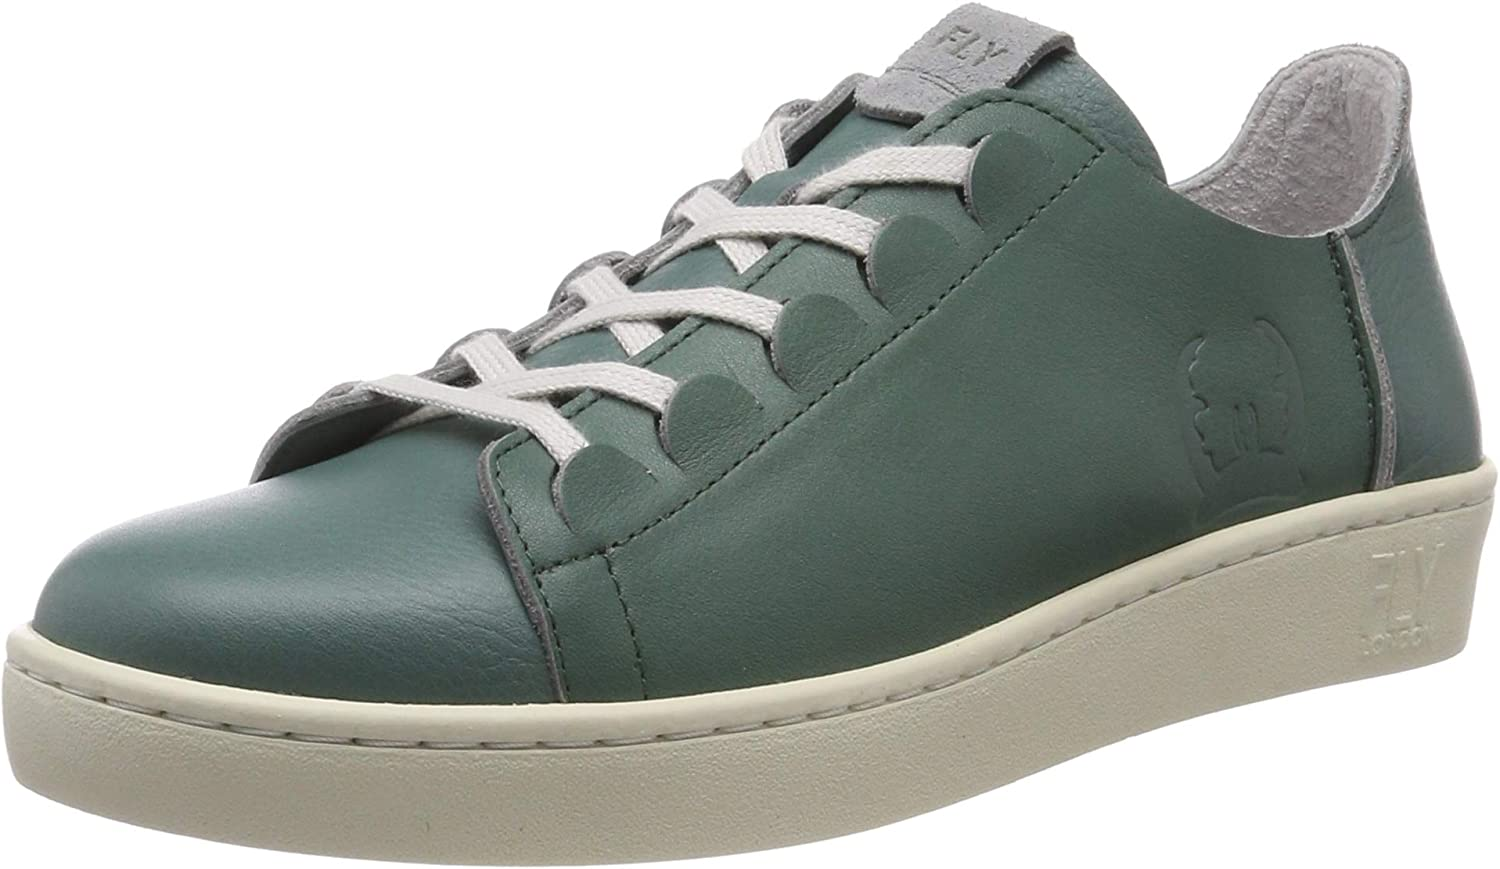 FLY London Women's Low-Top Trainers